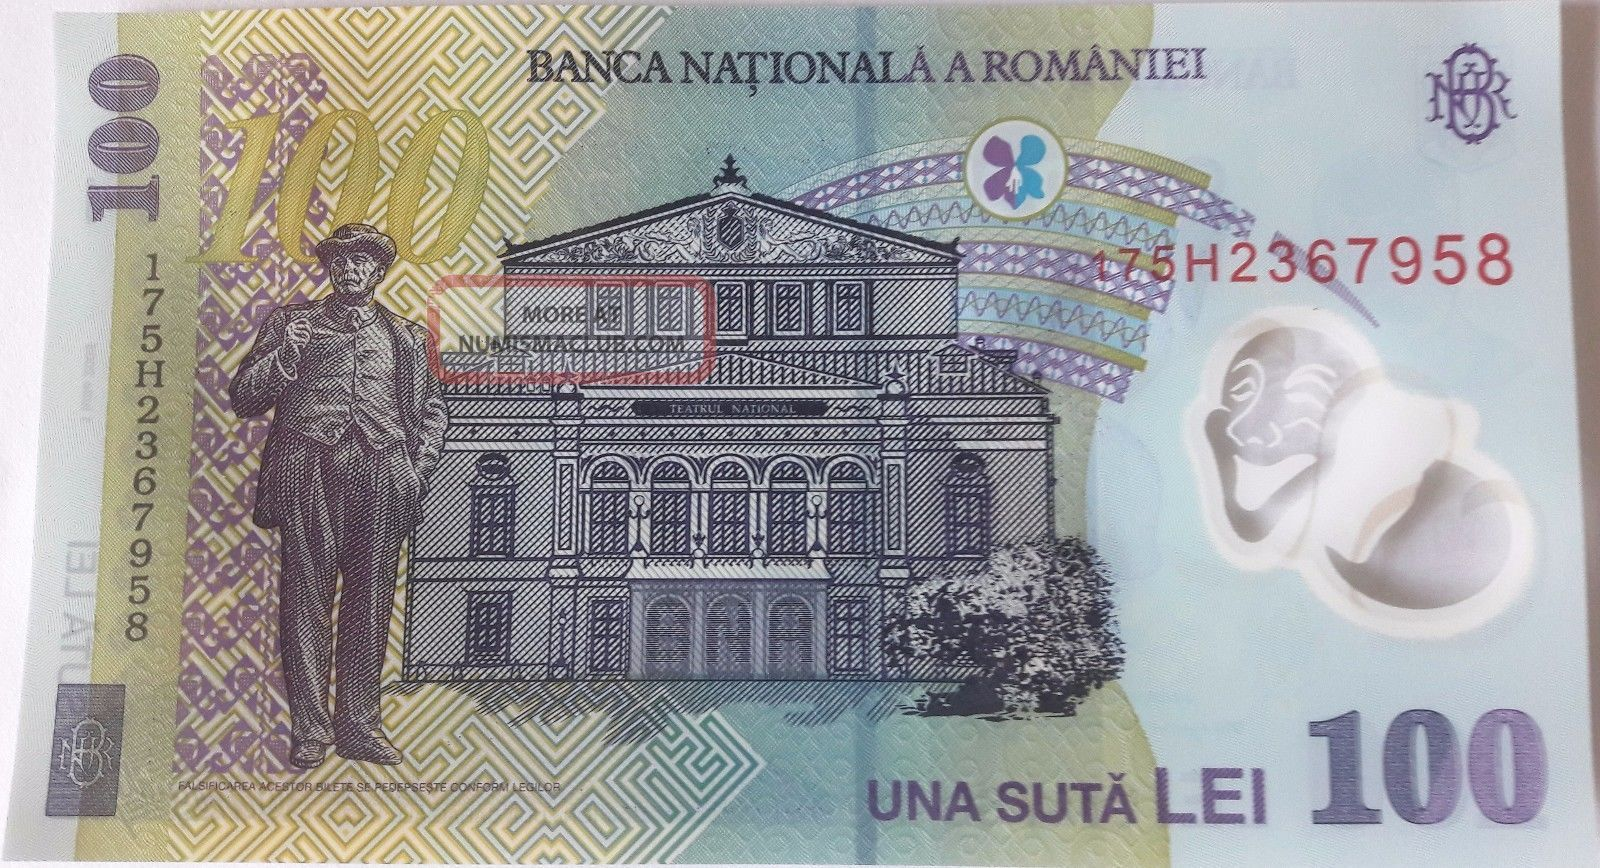 Romania - Unc 100 Lei Banknote Issued 2005 (2017) Polymer P121 Europe photo